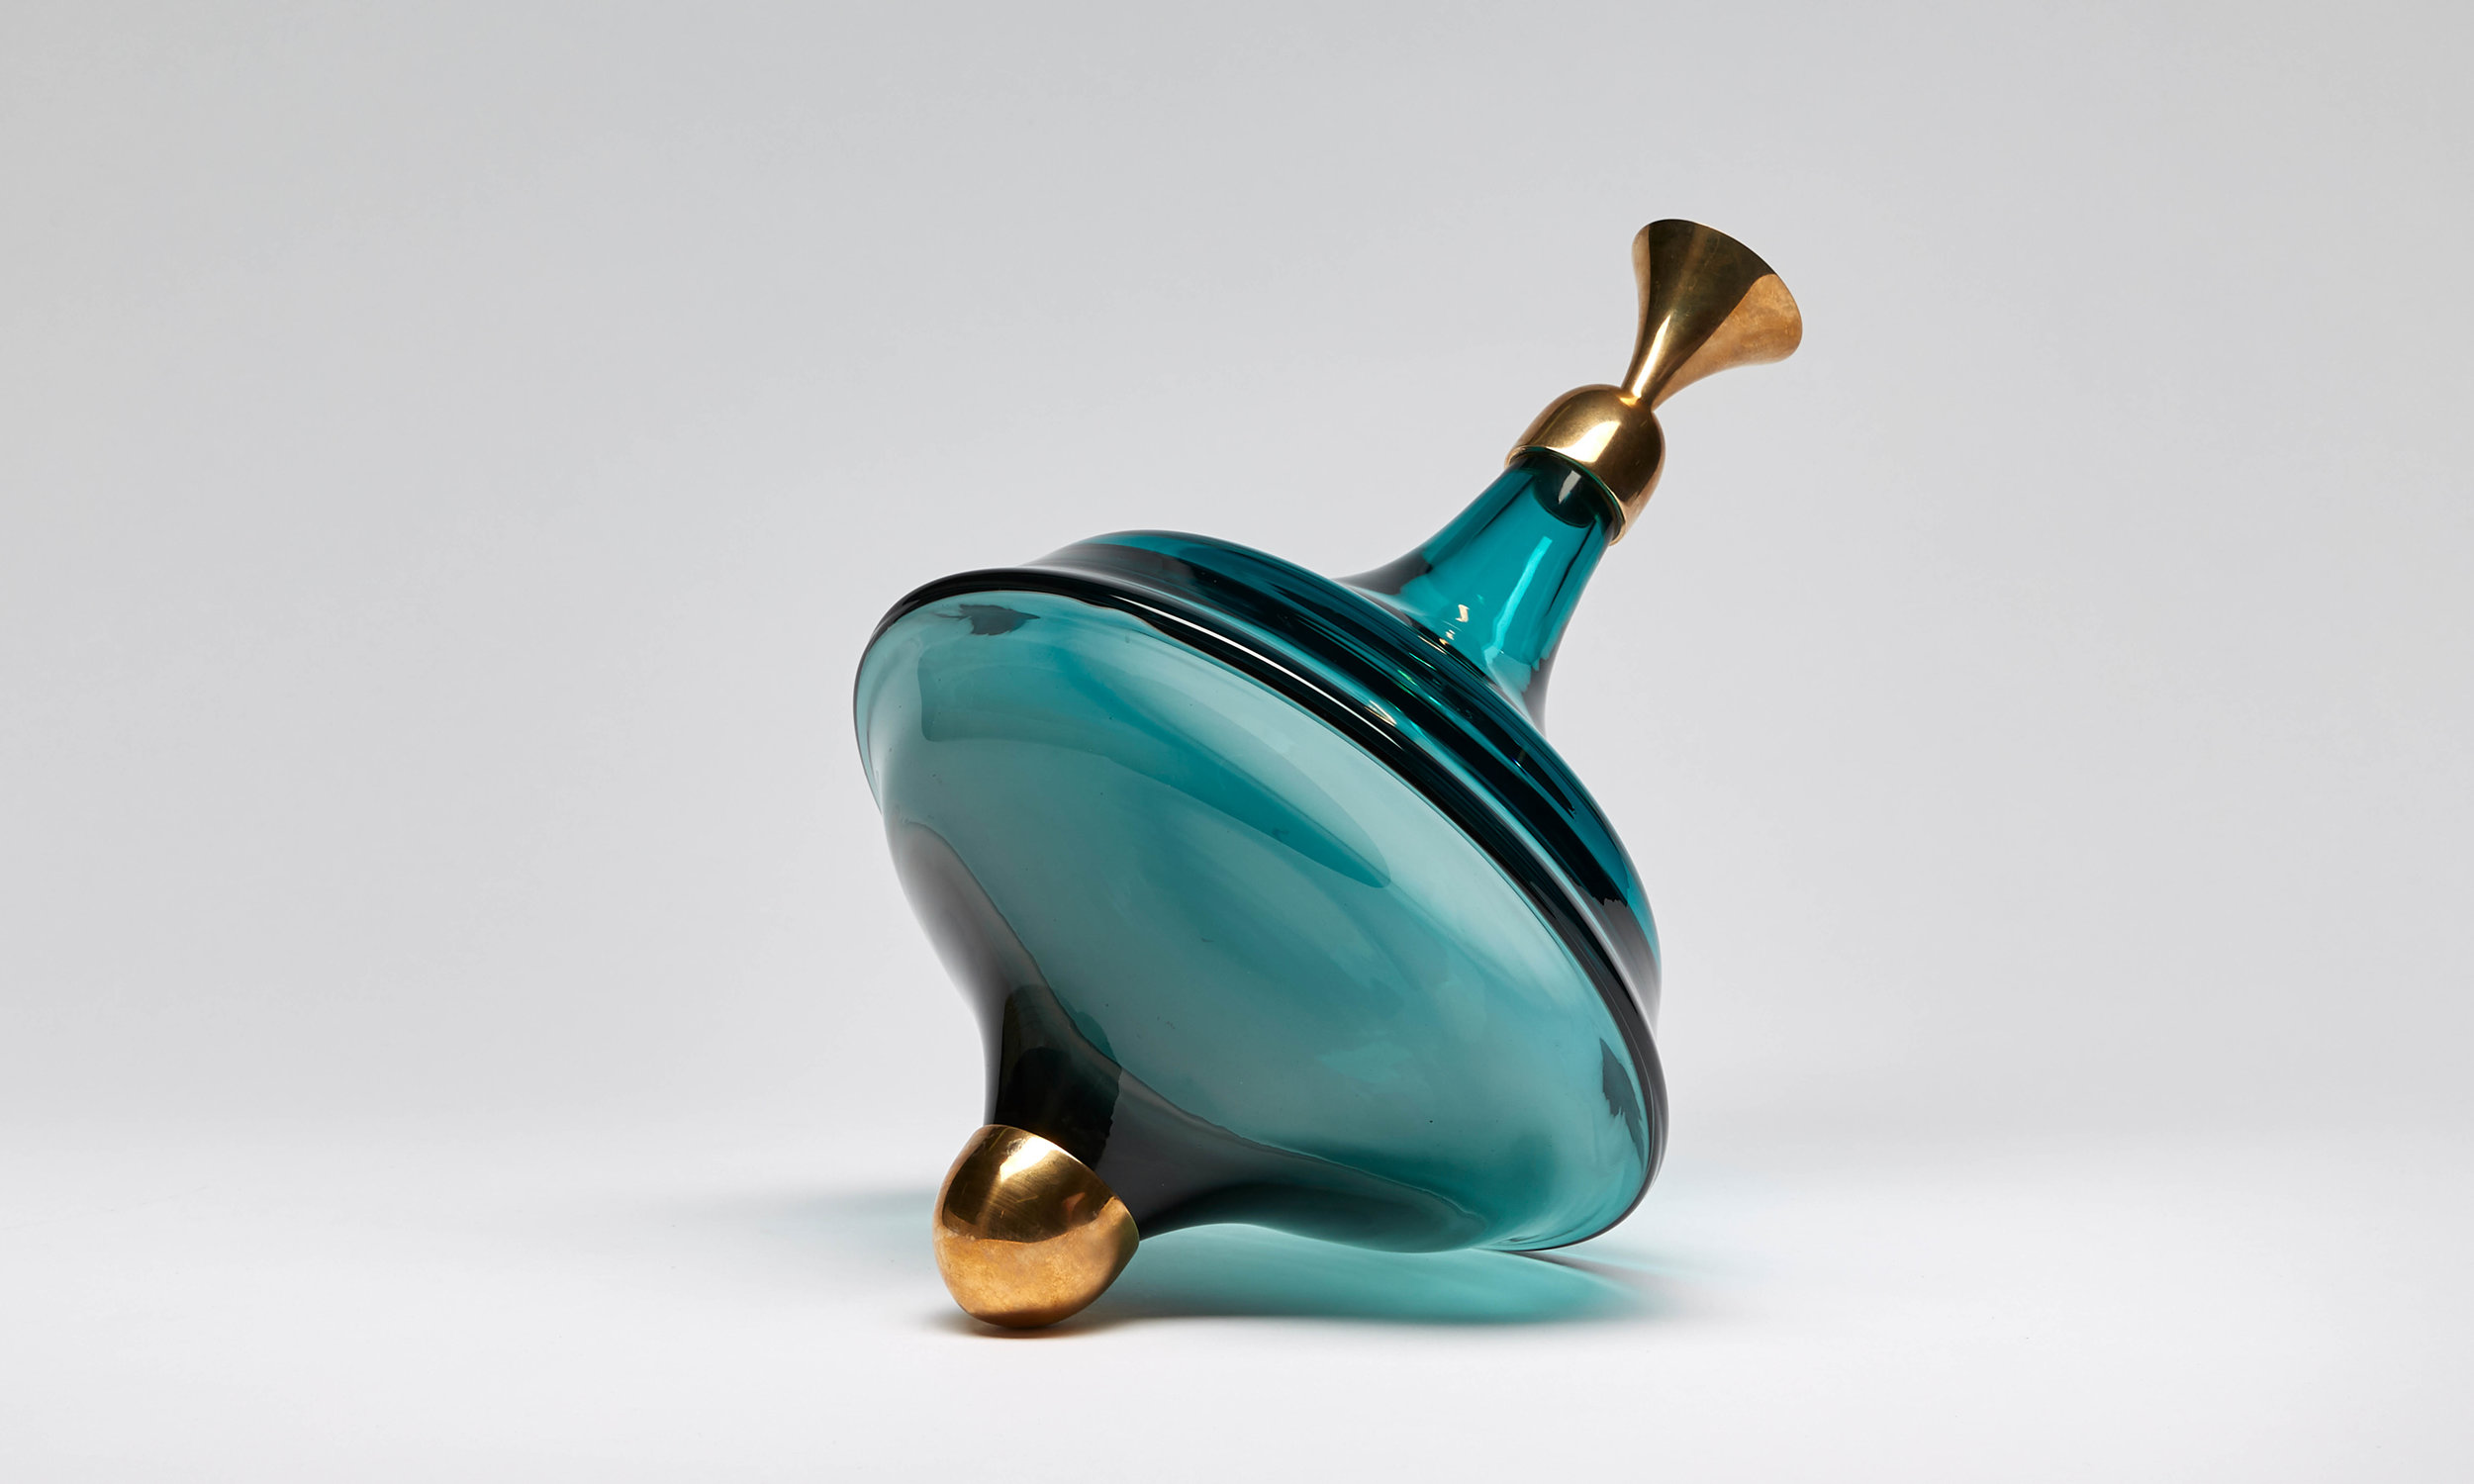 Trottola I - 2019  Free blown glass with bronze